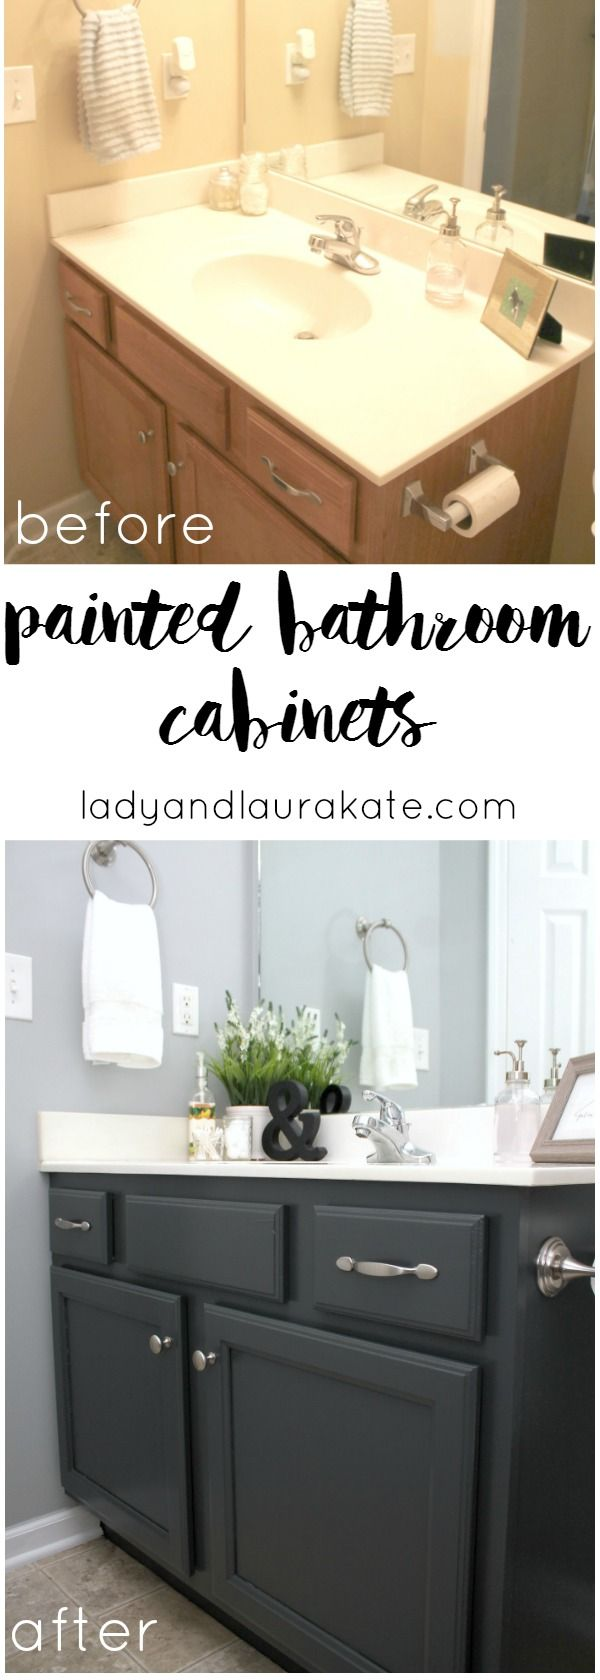 111 World`s Best Bathroom Color Schemes For Your Home | Home Improvement |  Pinterest | Bathroom Colors, Taps And Globe